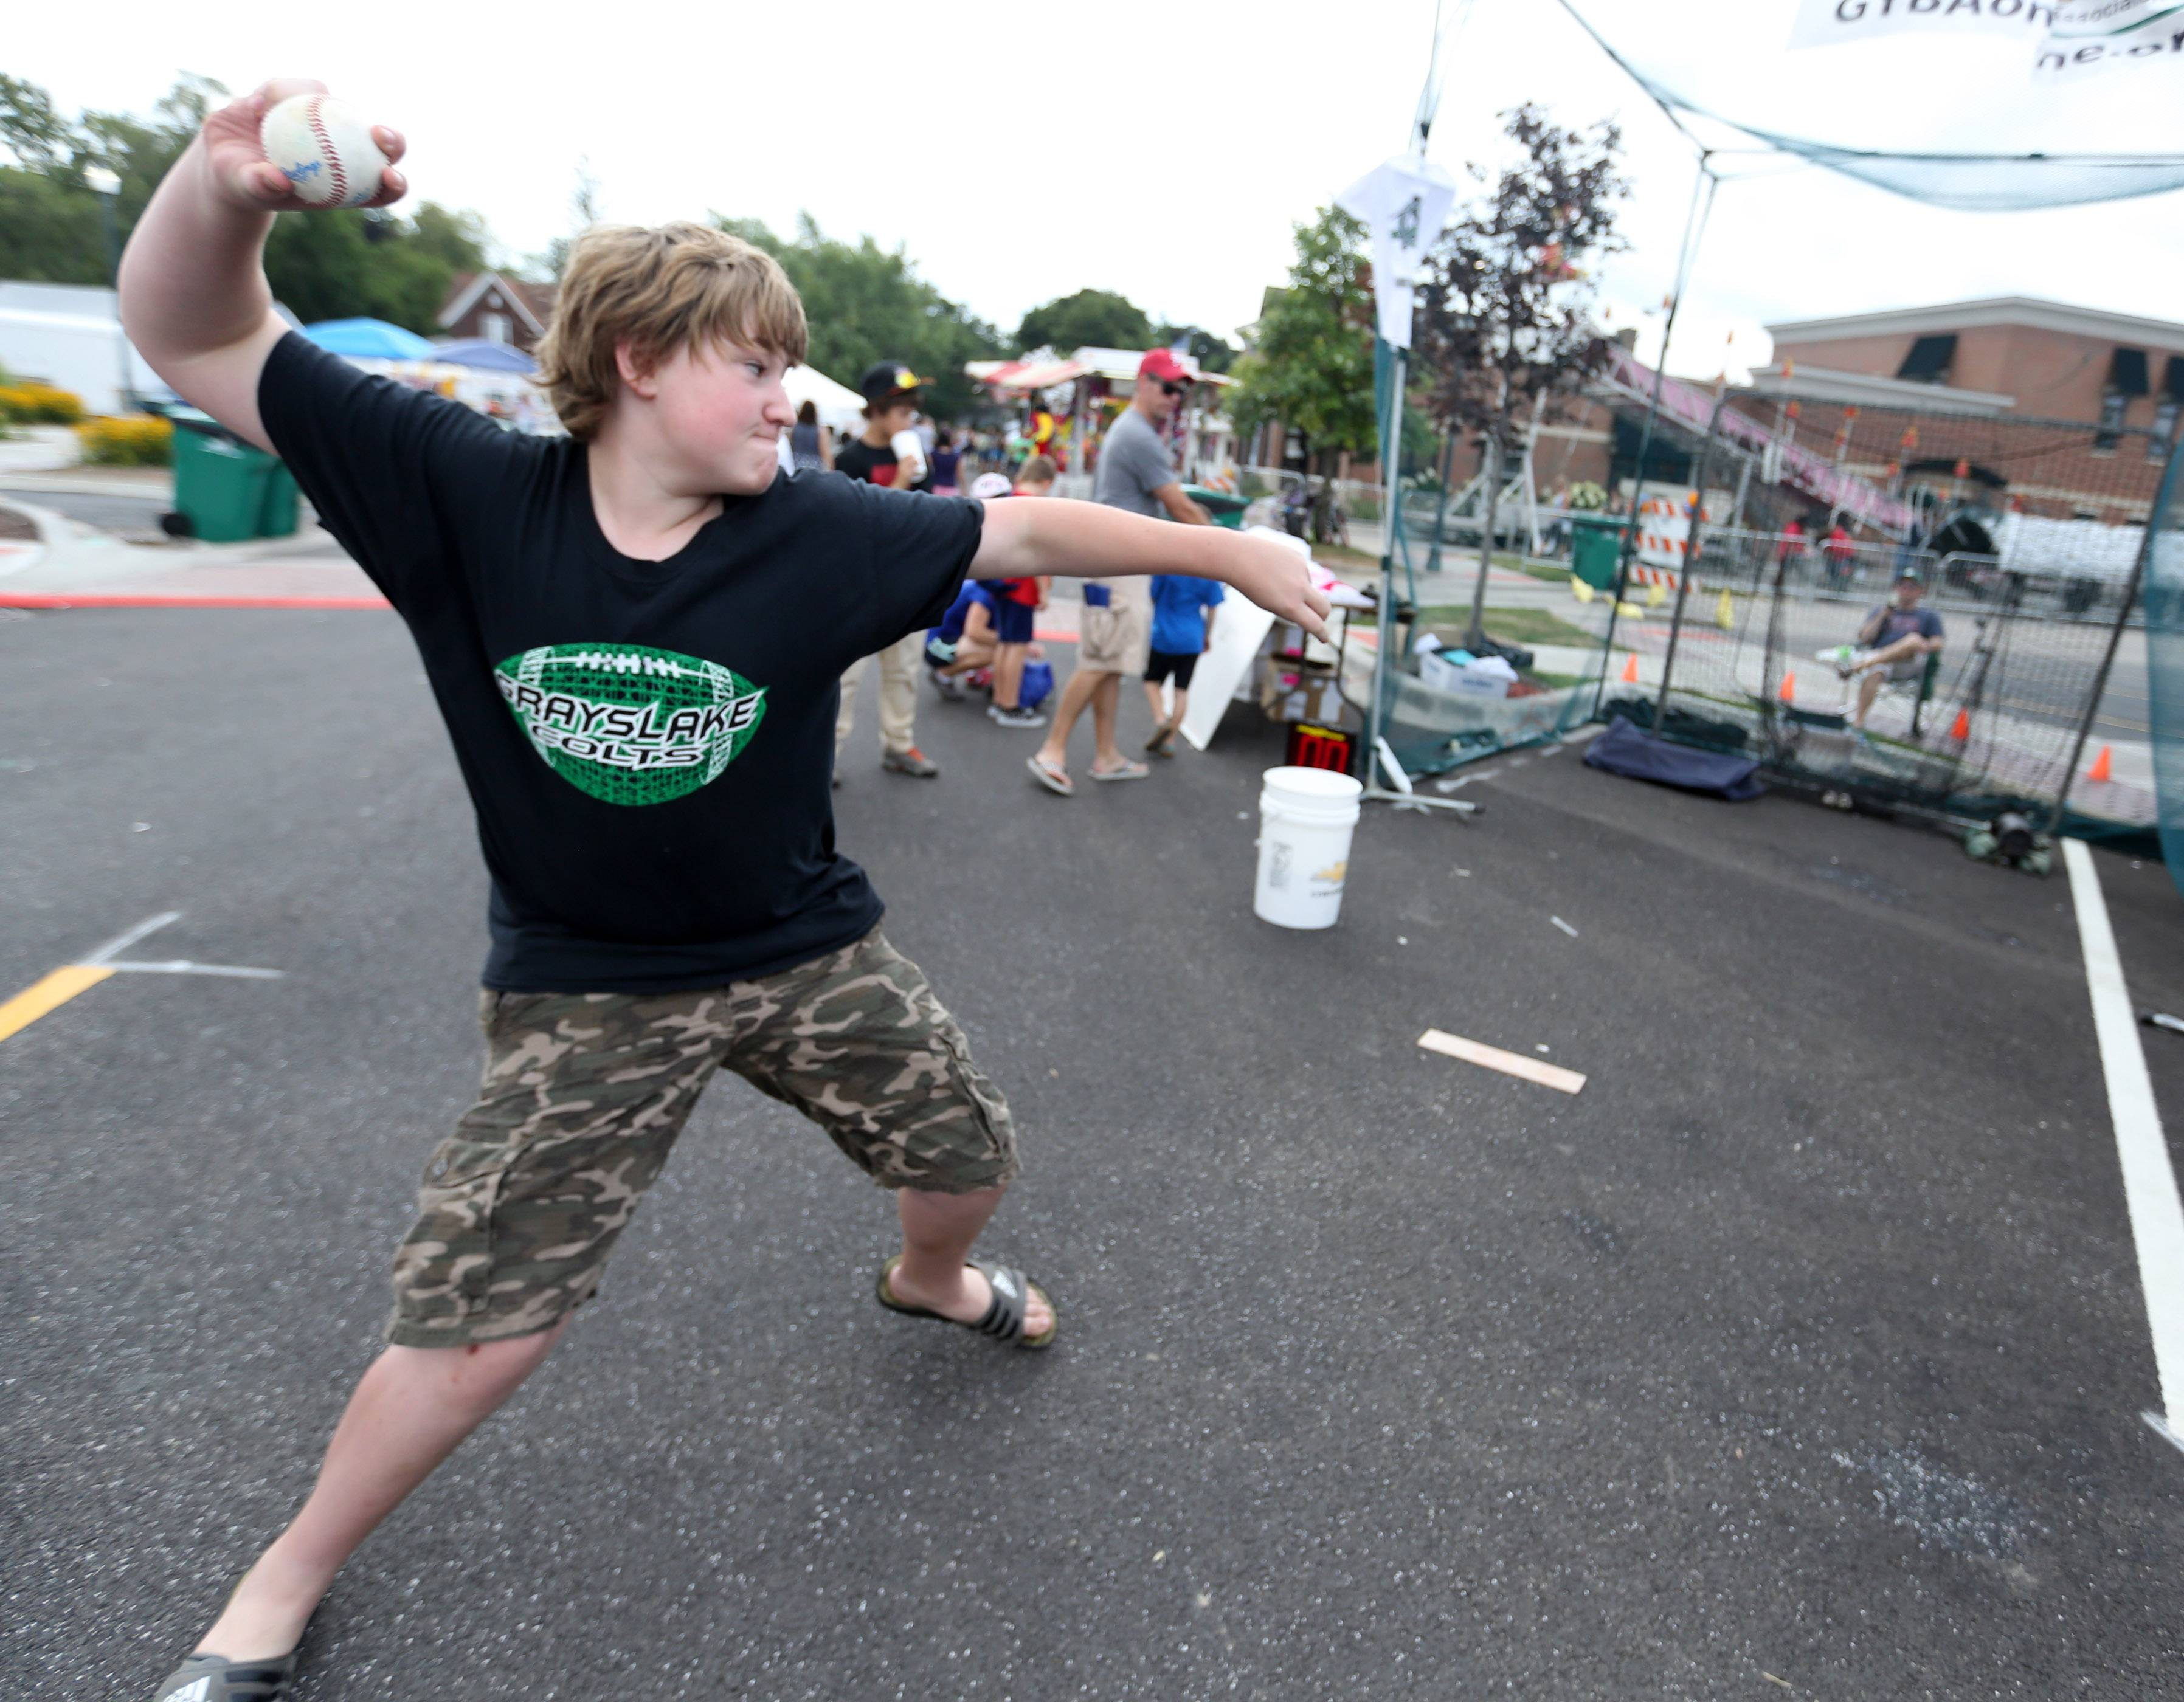 Tristan Gottstein, 13, of Grayslake, throws a 54 mph pitch at Grayslake Youth Baseball Association's pitching booth on Saturday at the second day of Grayslake Summer Days festival.